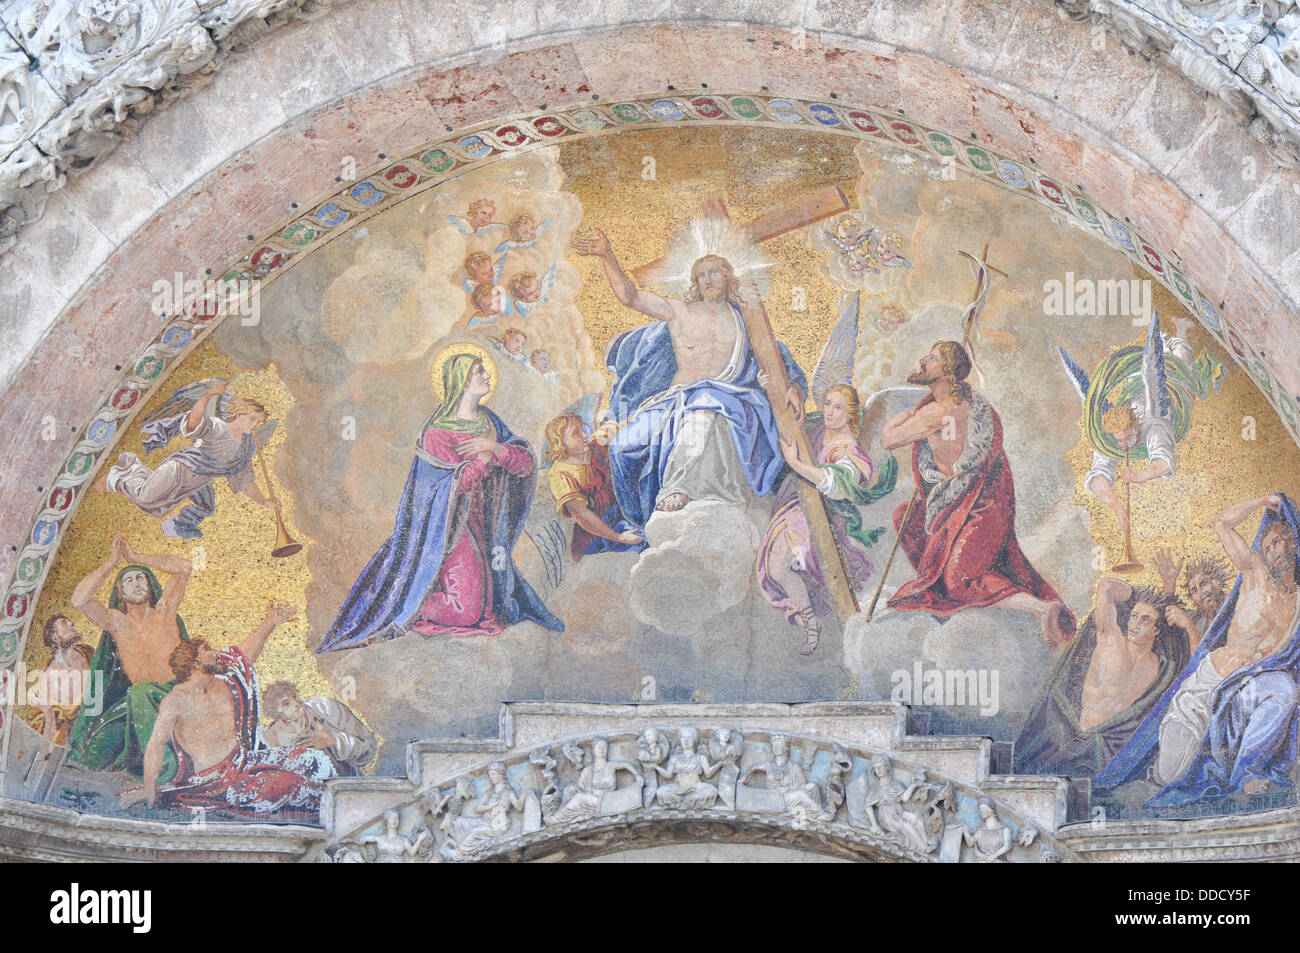 Religious painting on the front door of St. Marco Church, Venice Italy - Stock Image